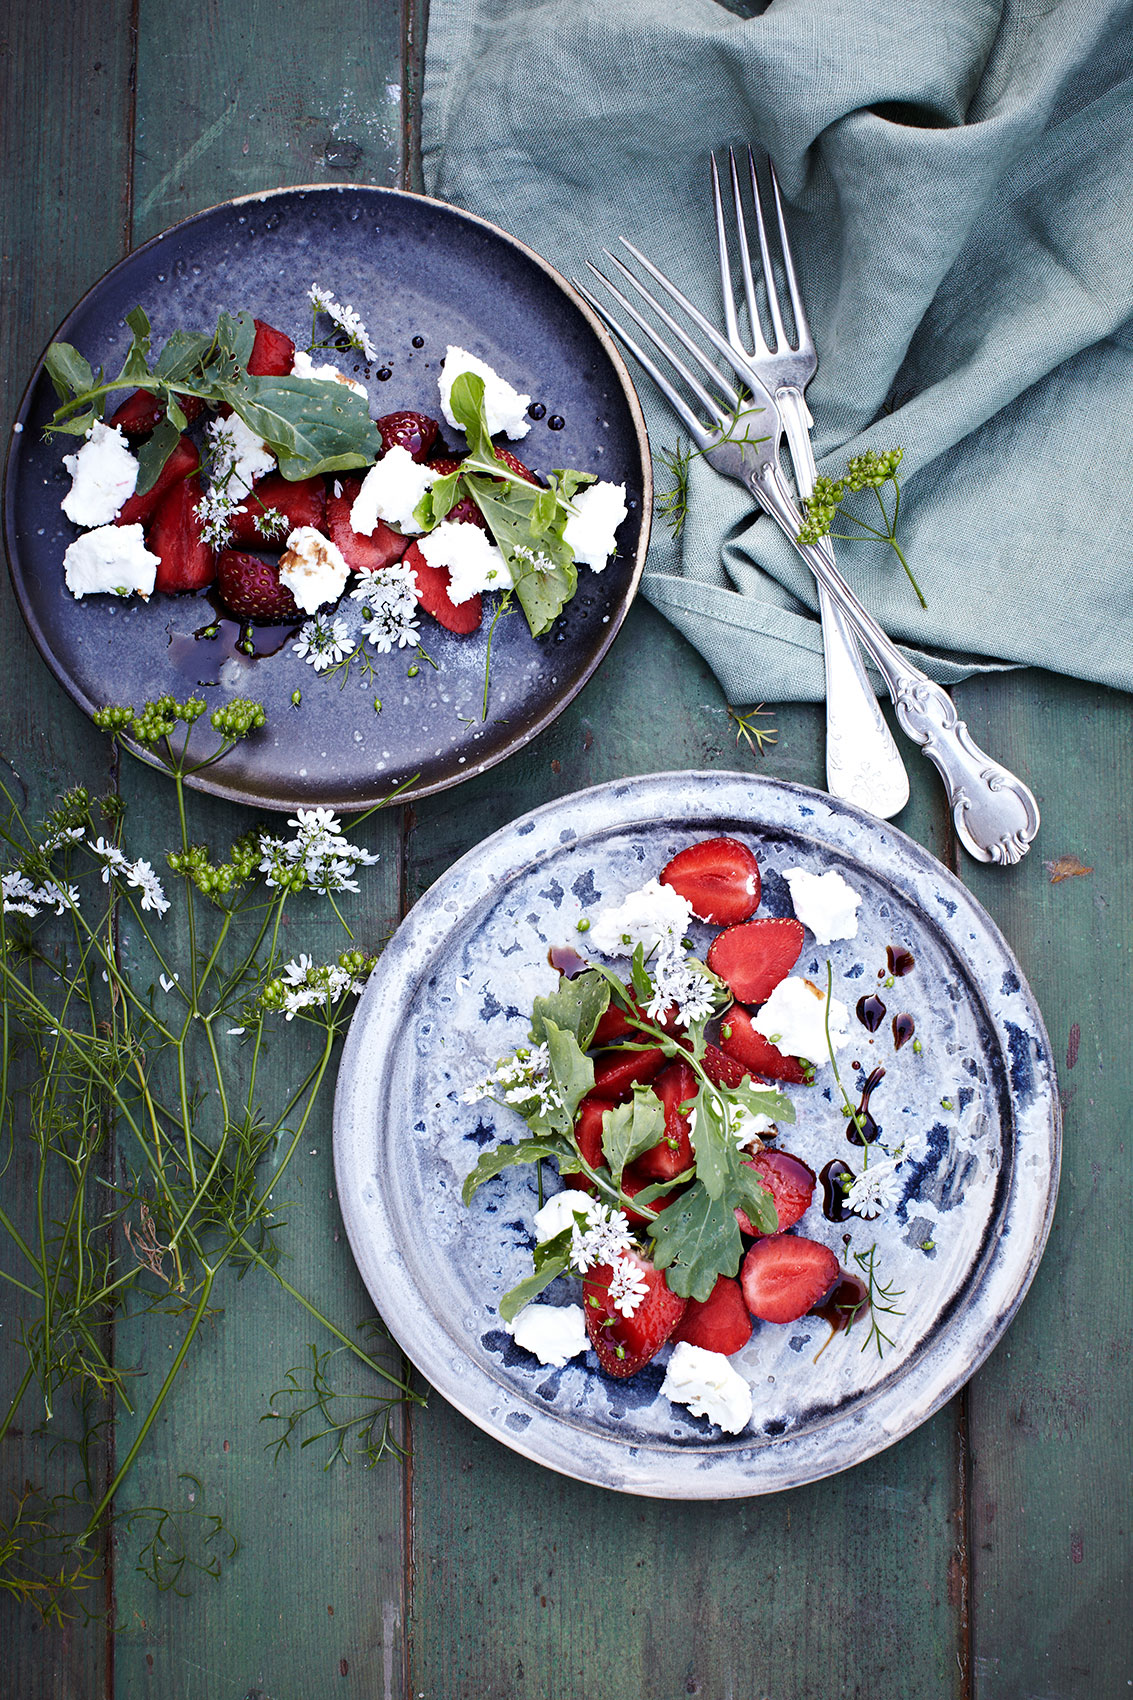 Homestyle_Stedsans_StrawberryRocketSalad_09_S